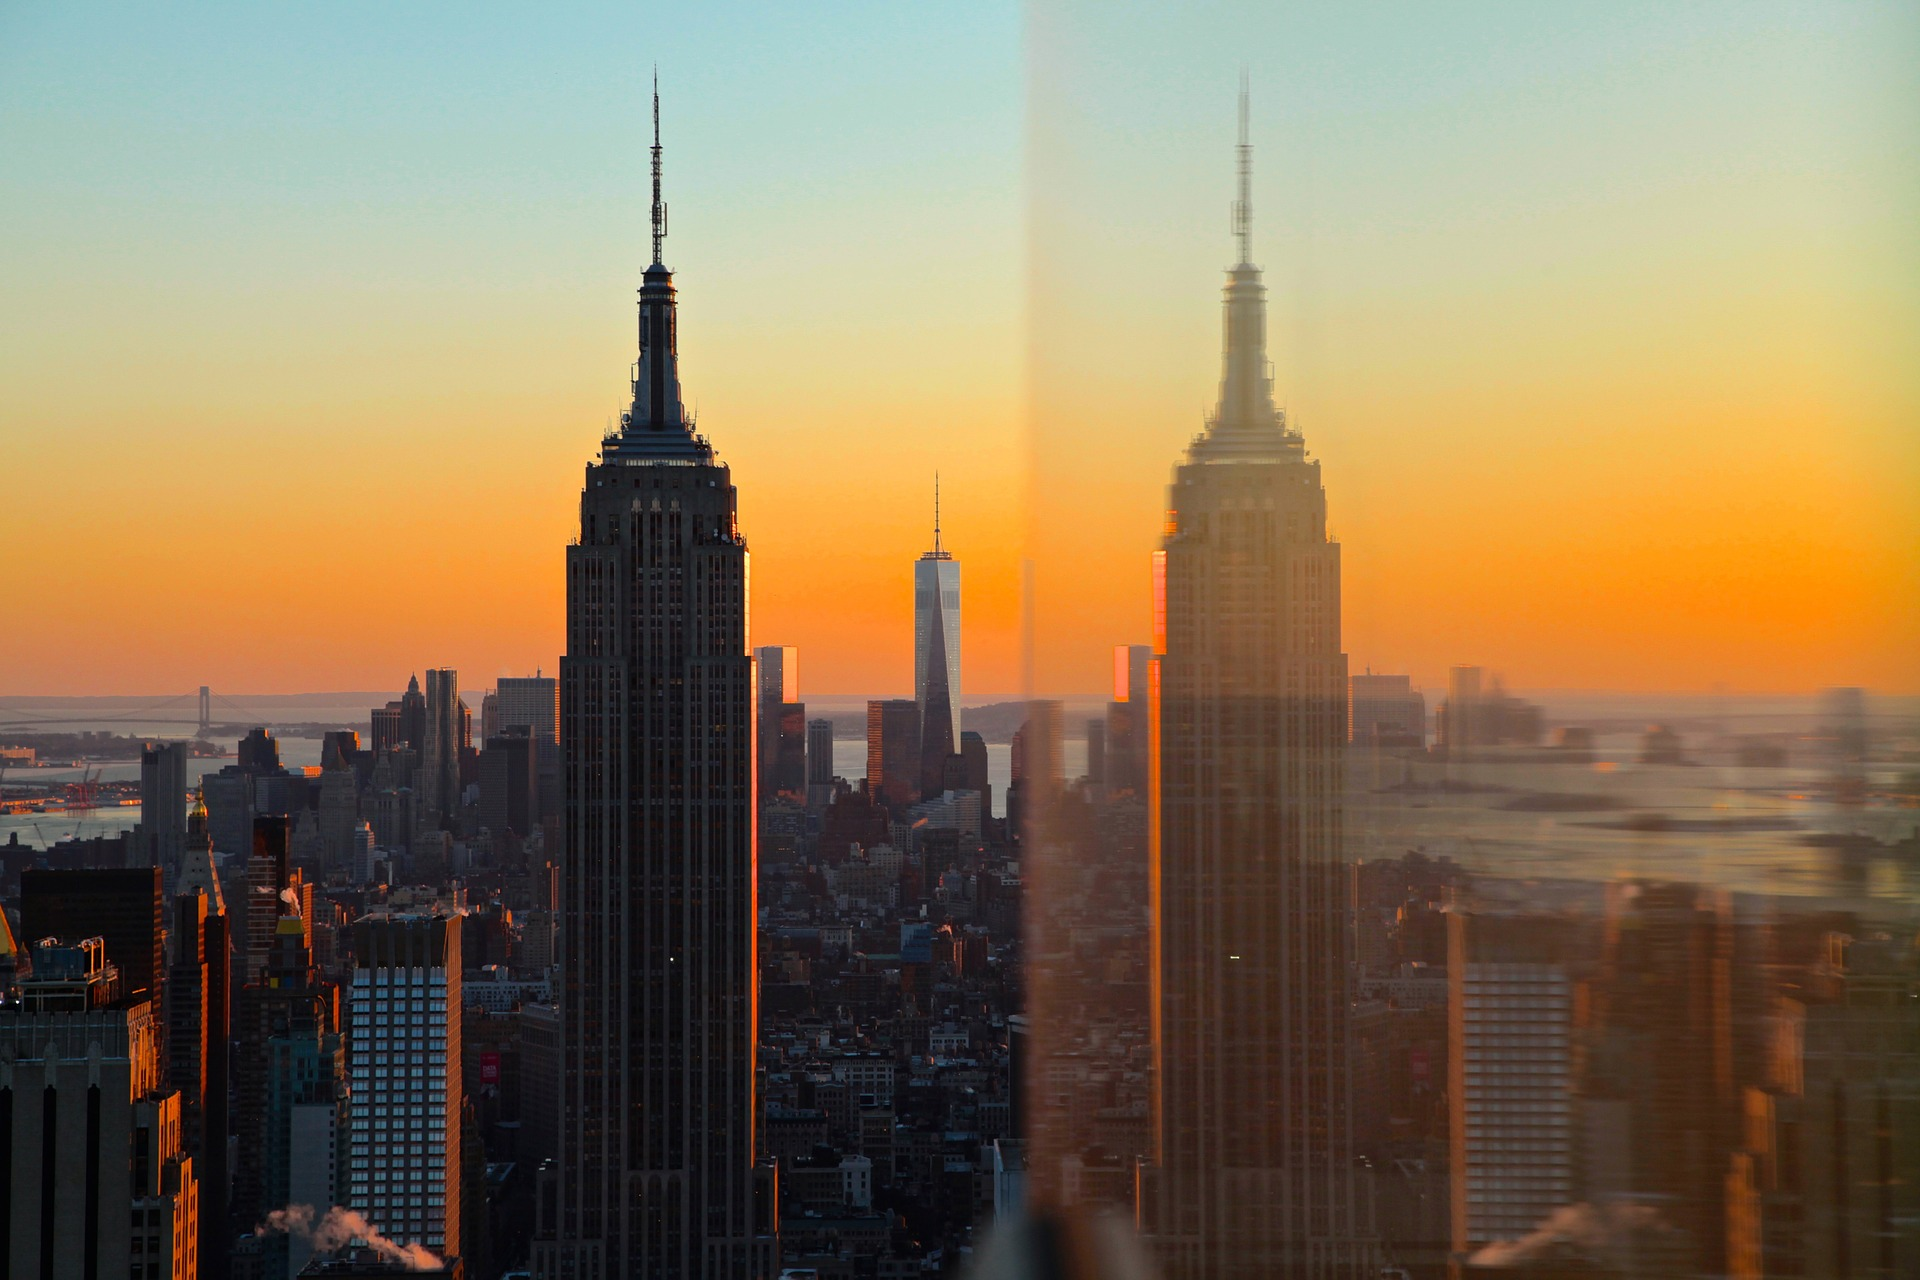 Empire State Building: Hostel Of The Week: HI - New York City